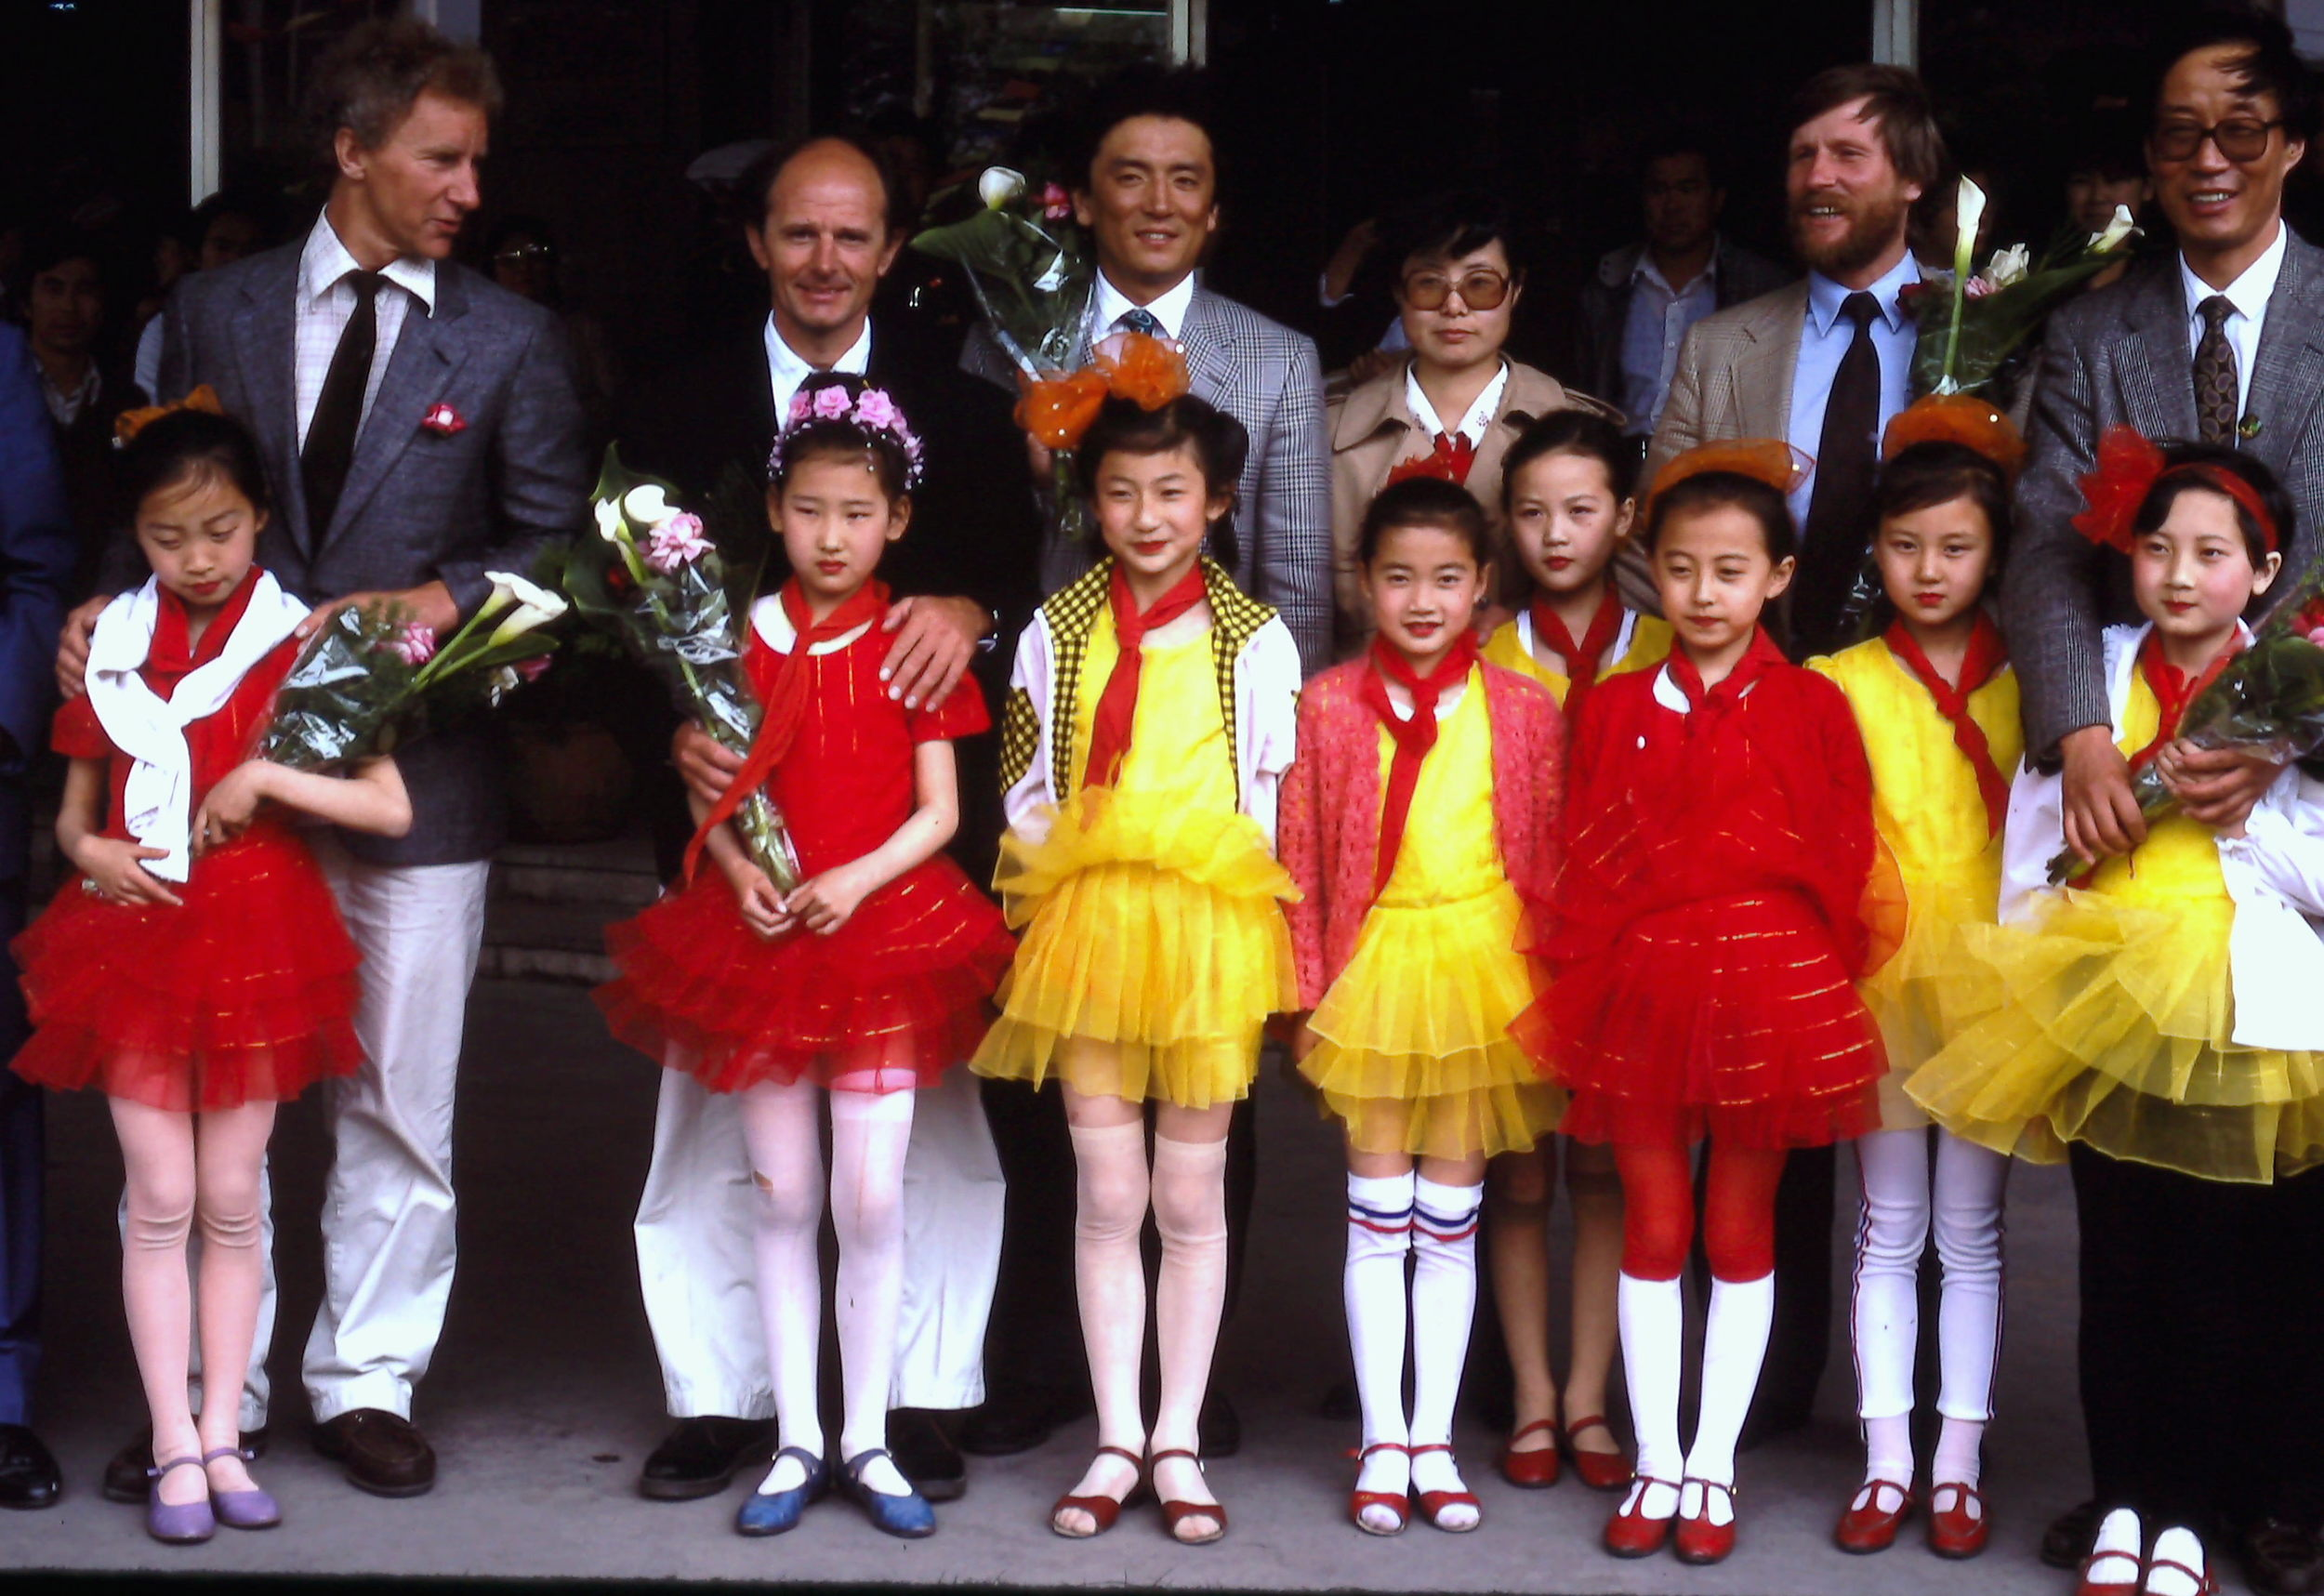 The 1990 International Trans-Antarctica Team is greeted at the Beijing airport, May 1990. Photo: Cynthia Mueller.